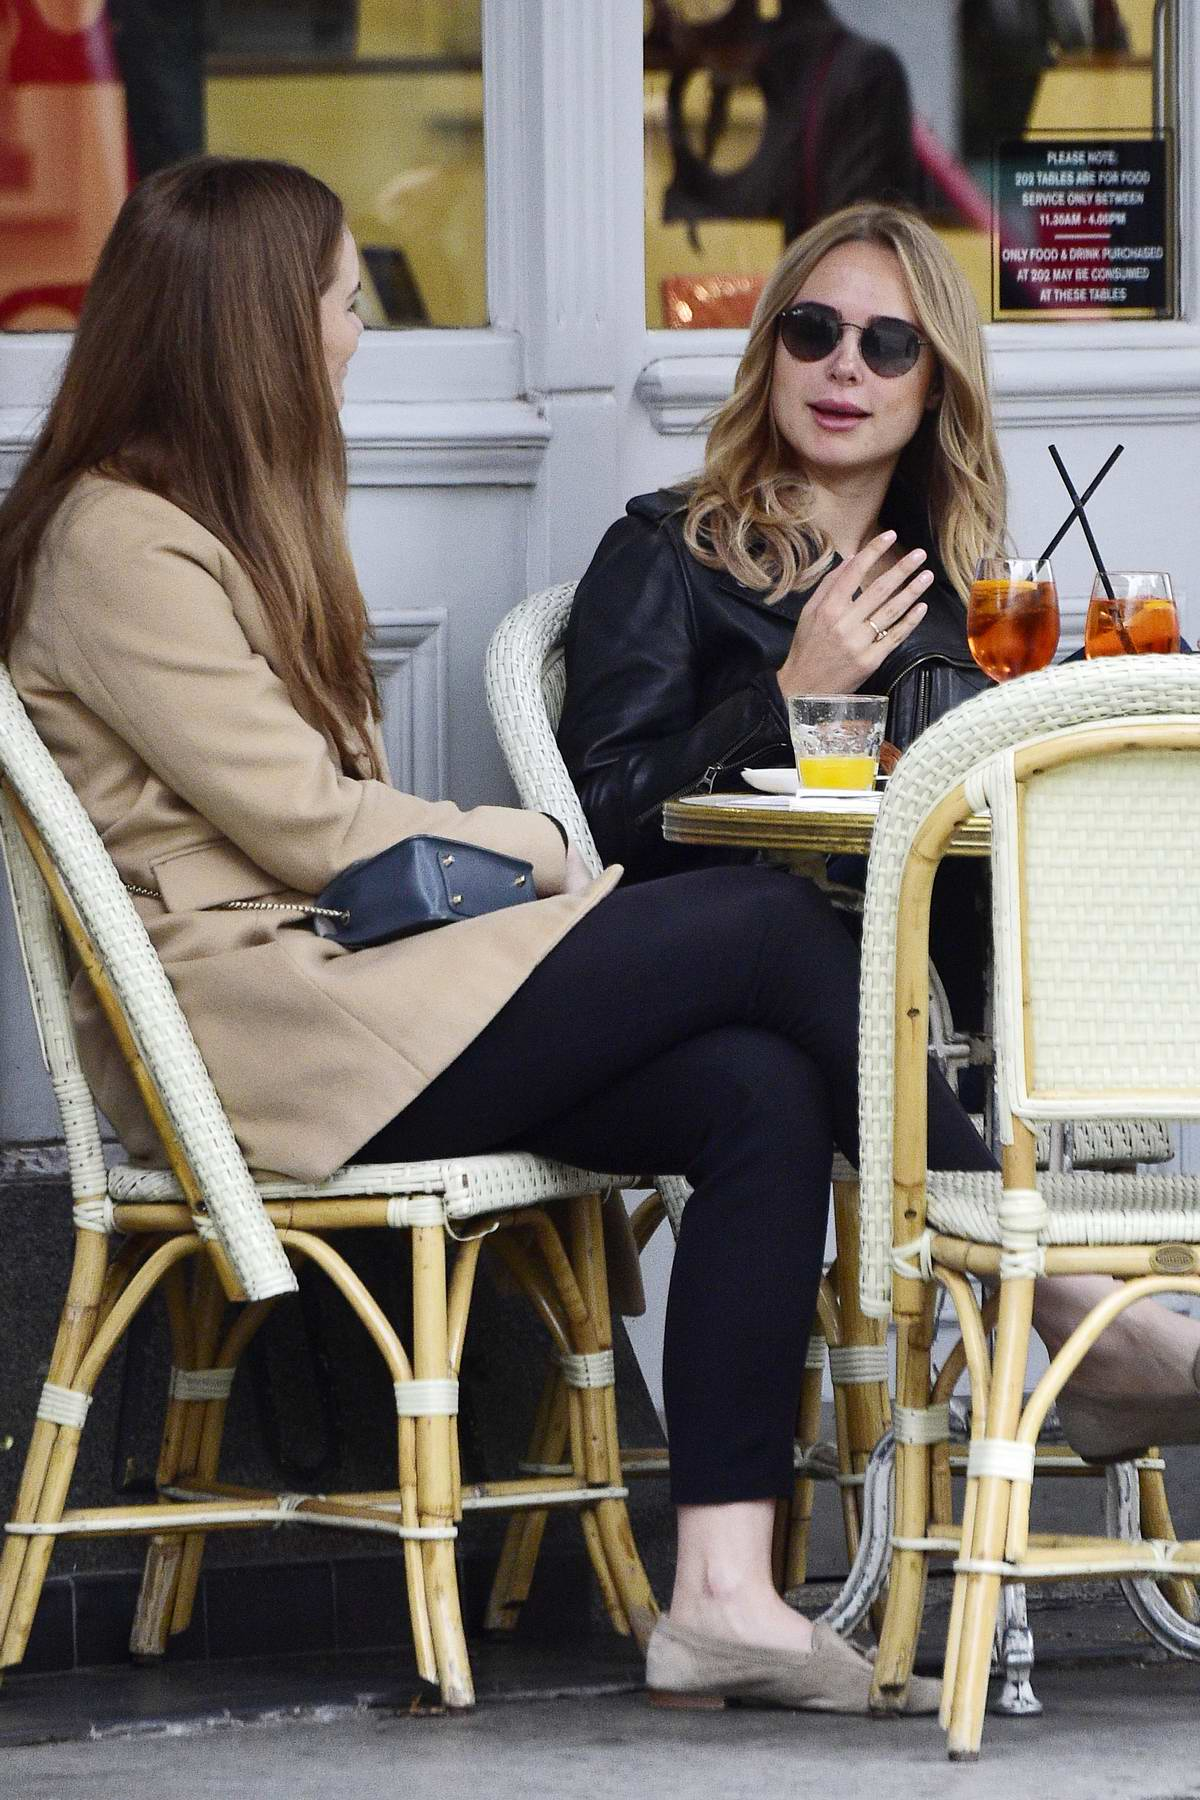 Kimberley Garner enjoys a spritzer and lunch with Ellie Lyons in West London, UK